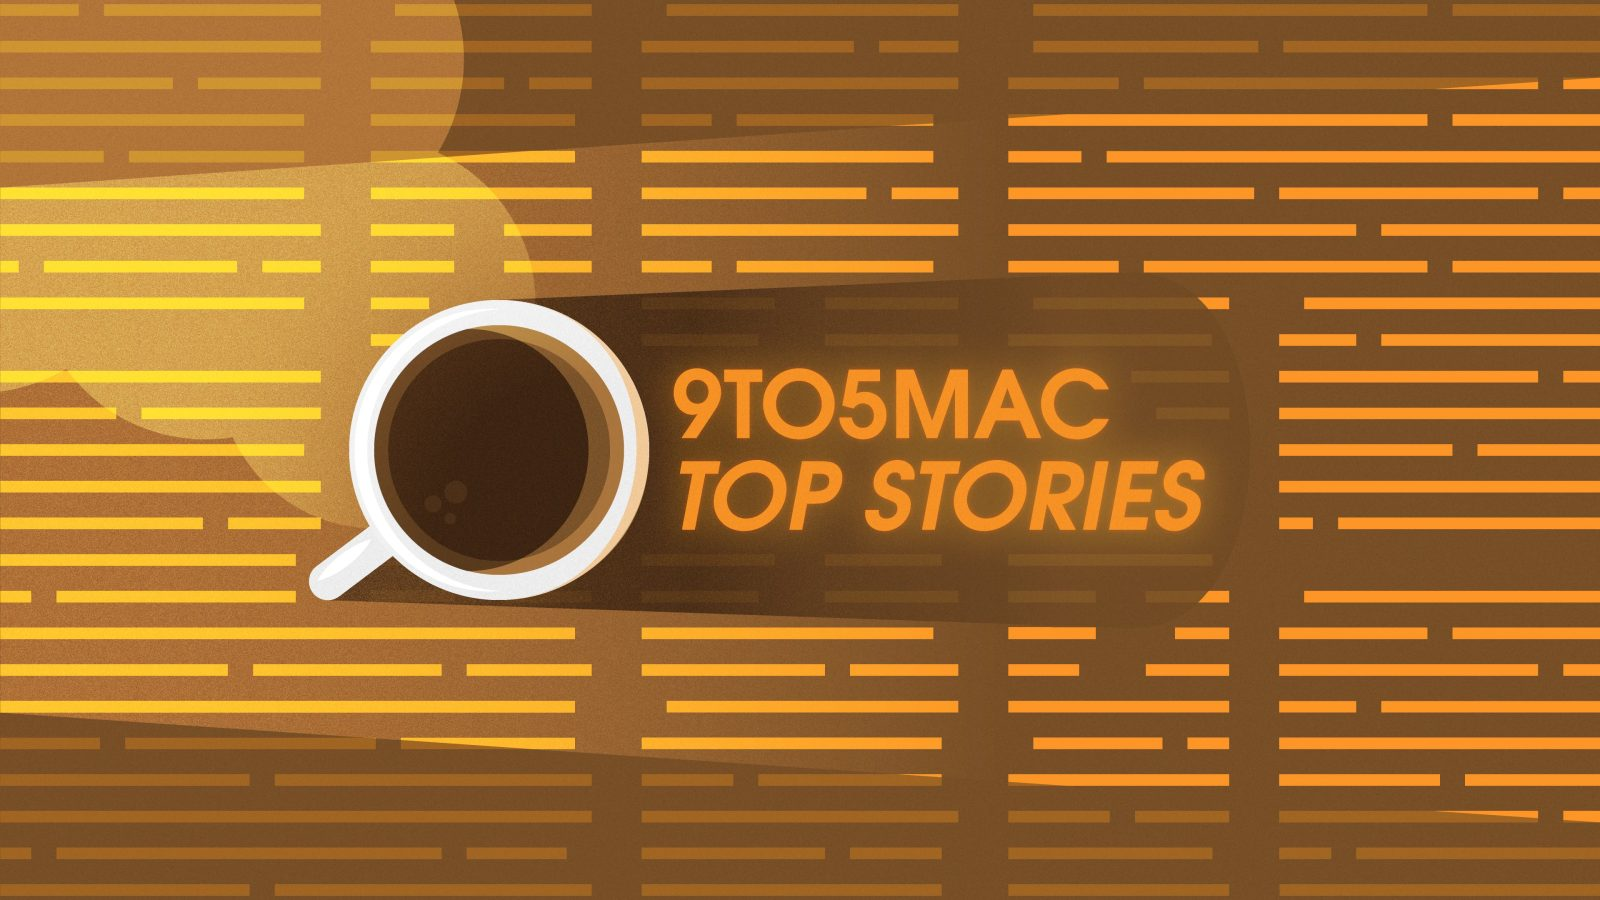 This week's top stories: New Apple Watch designs, Apple Arcade beta test, more